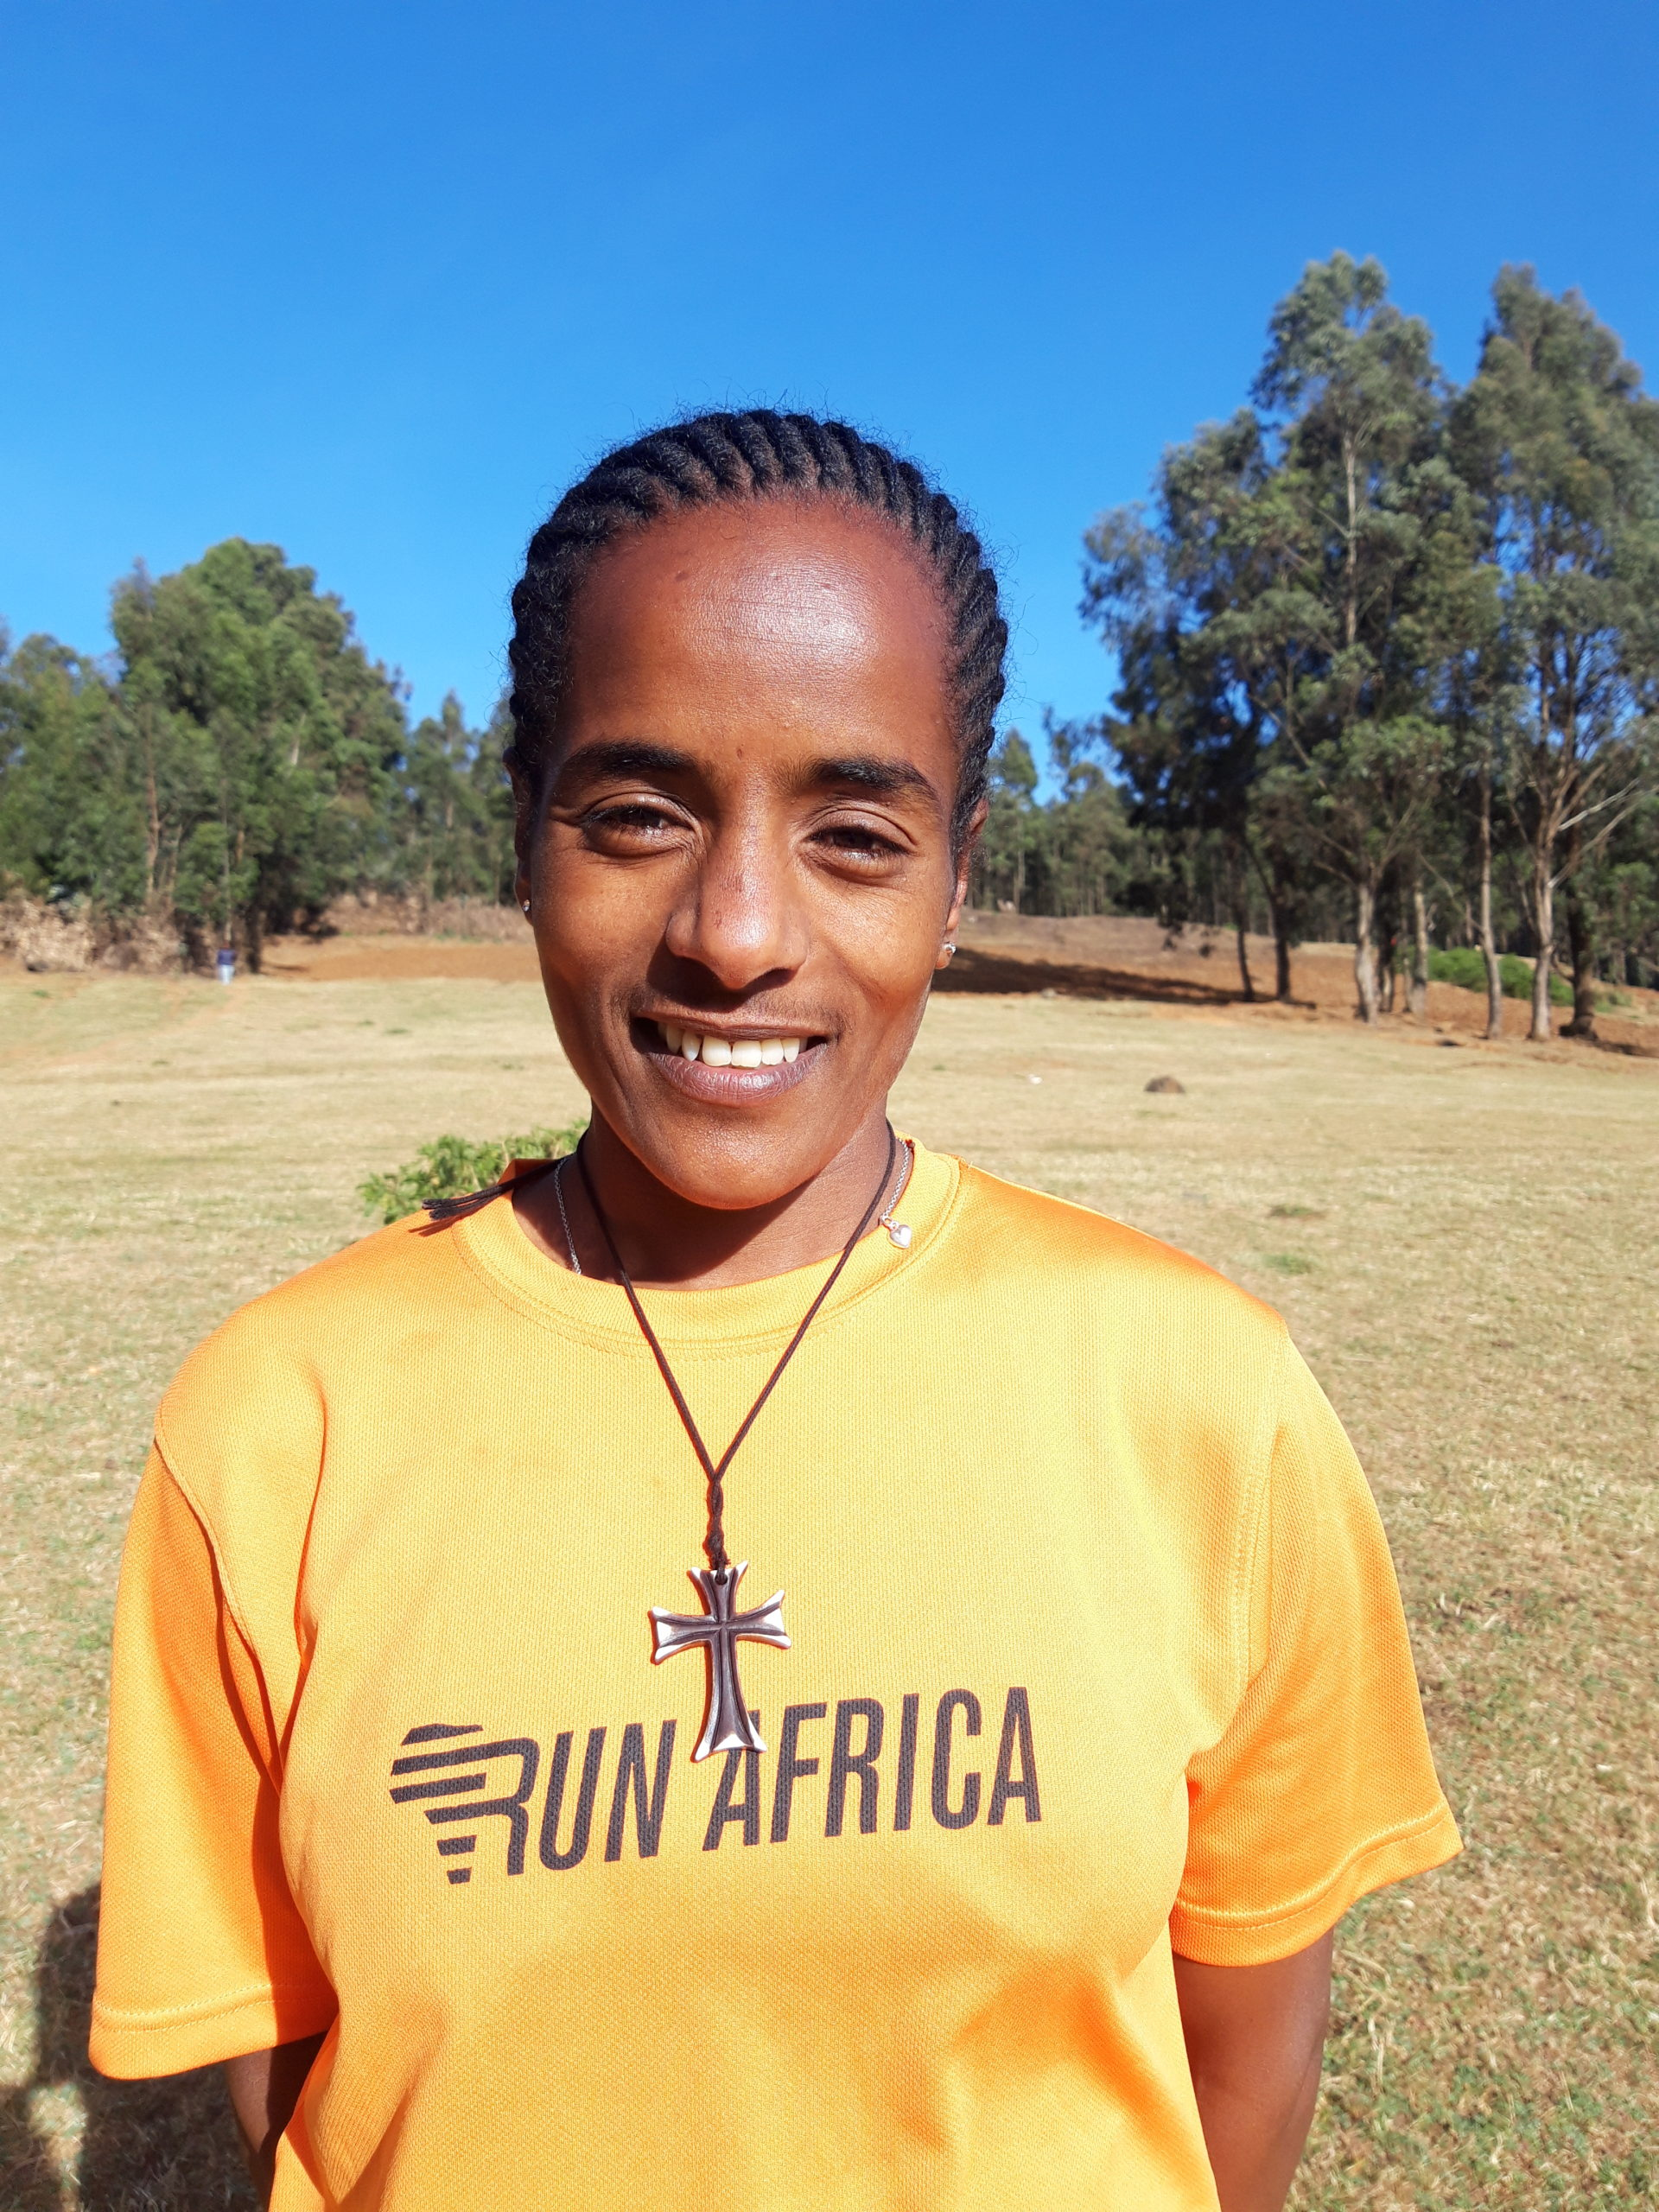 run-africa-high-altitude-training-running-camp